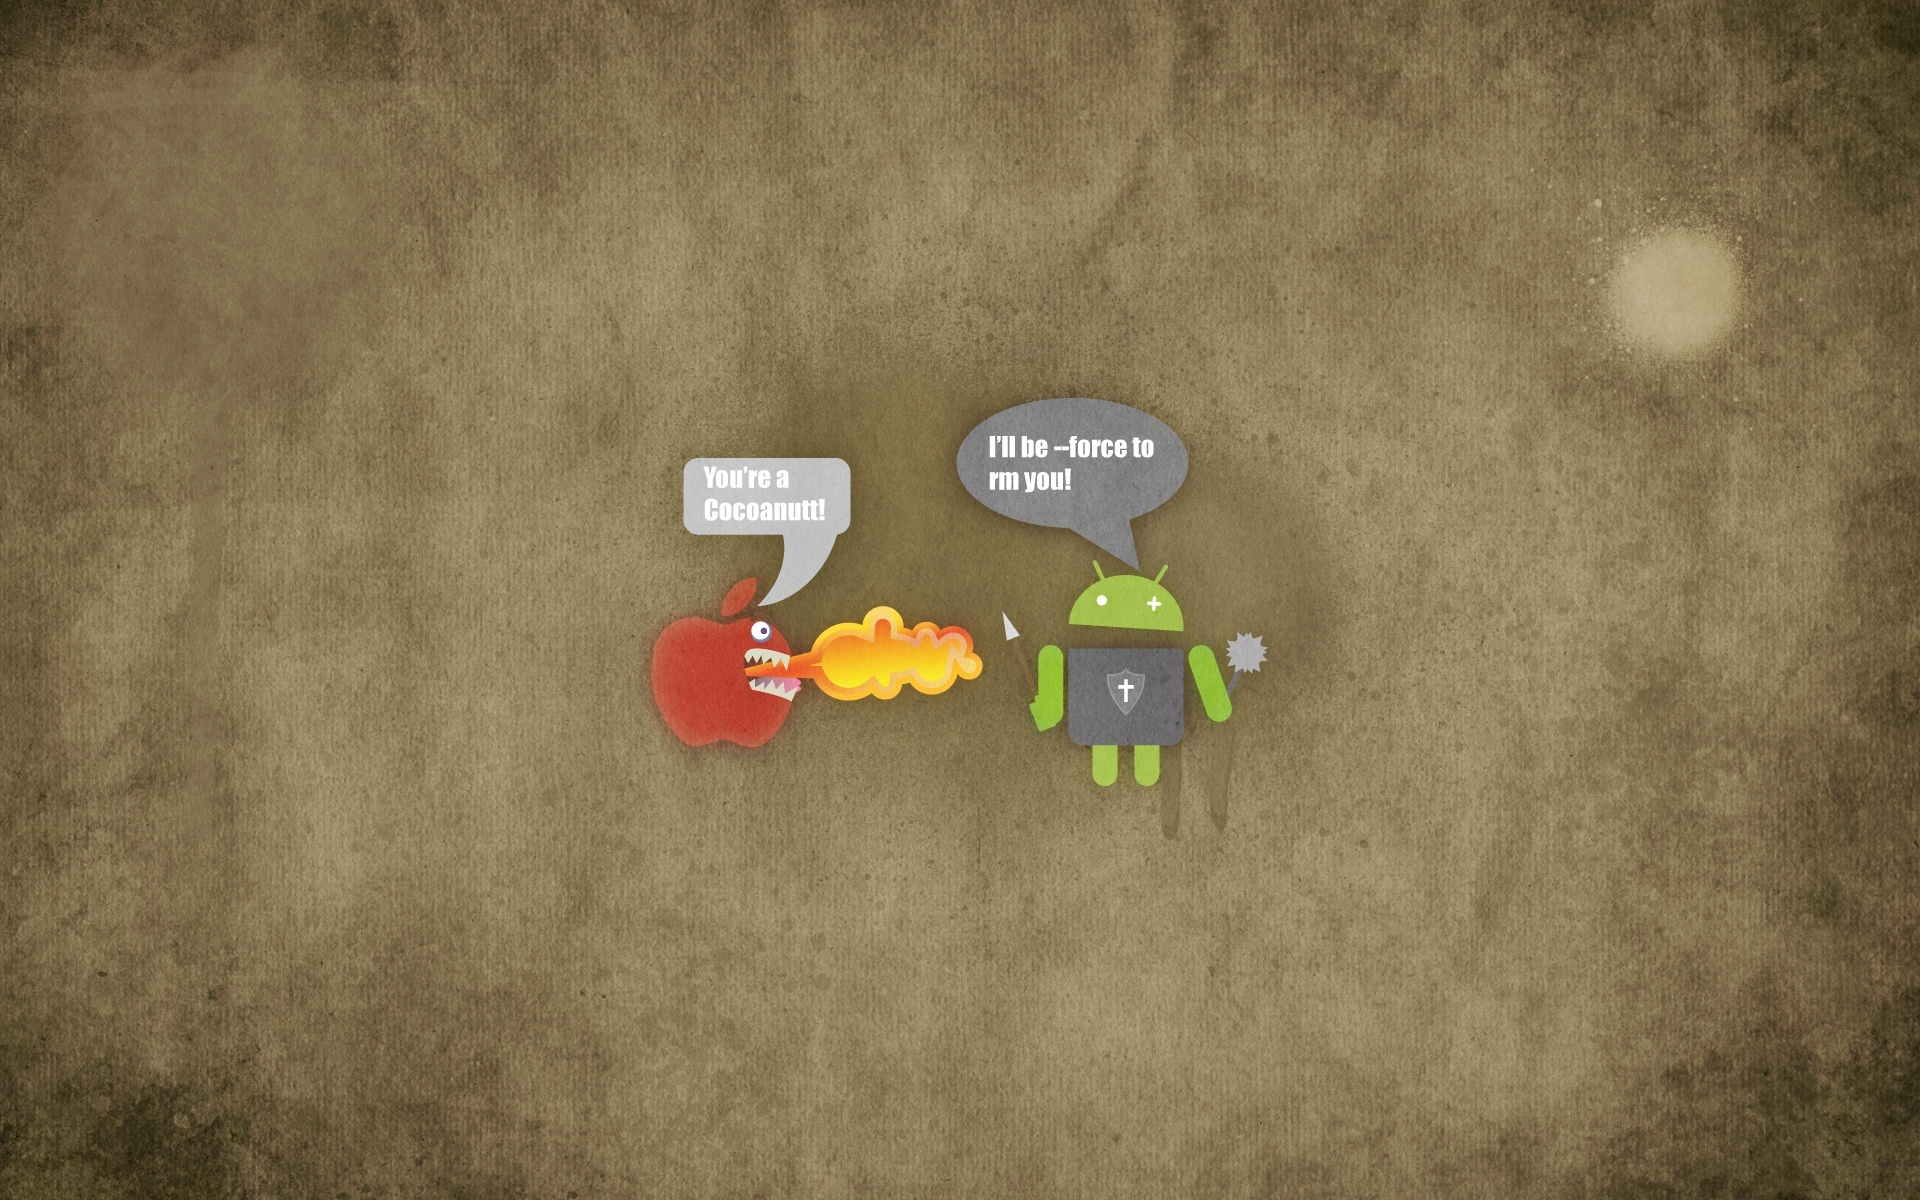 Pics Photos   Hd Funny Apple Vs Android Wallpapers Description 1920x1200